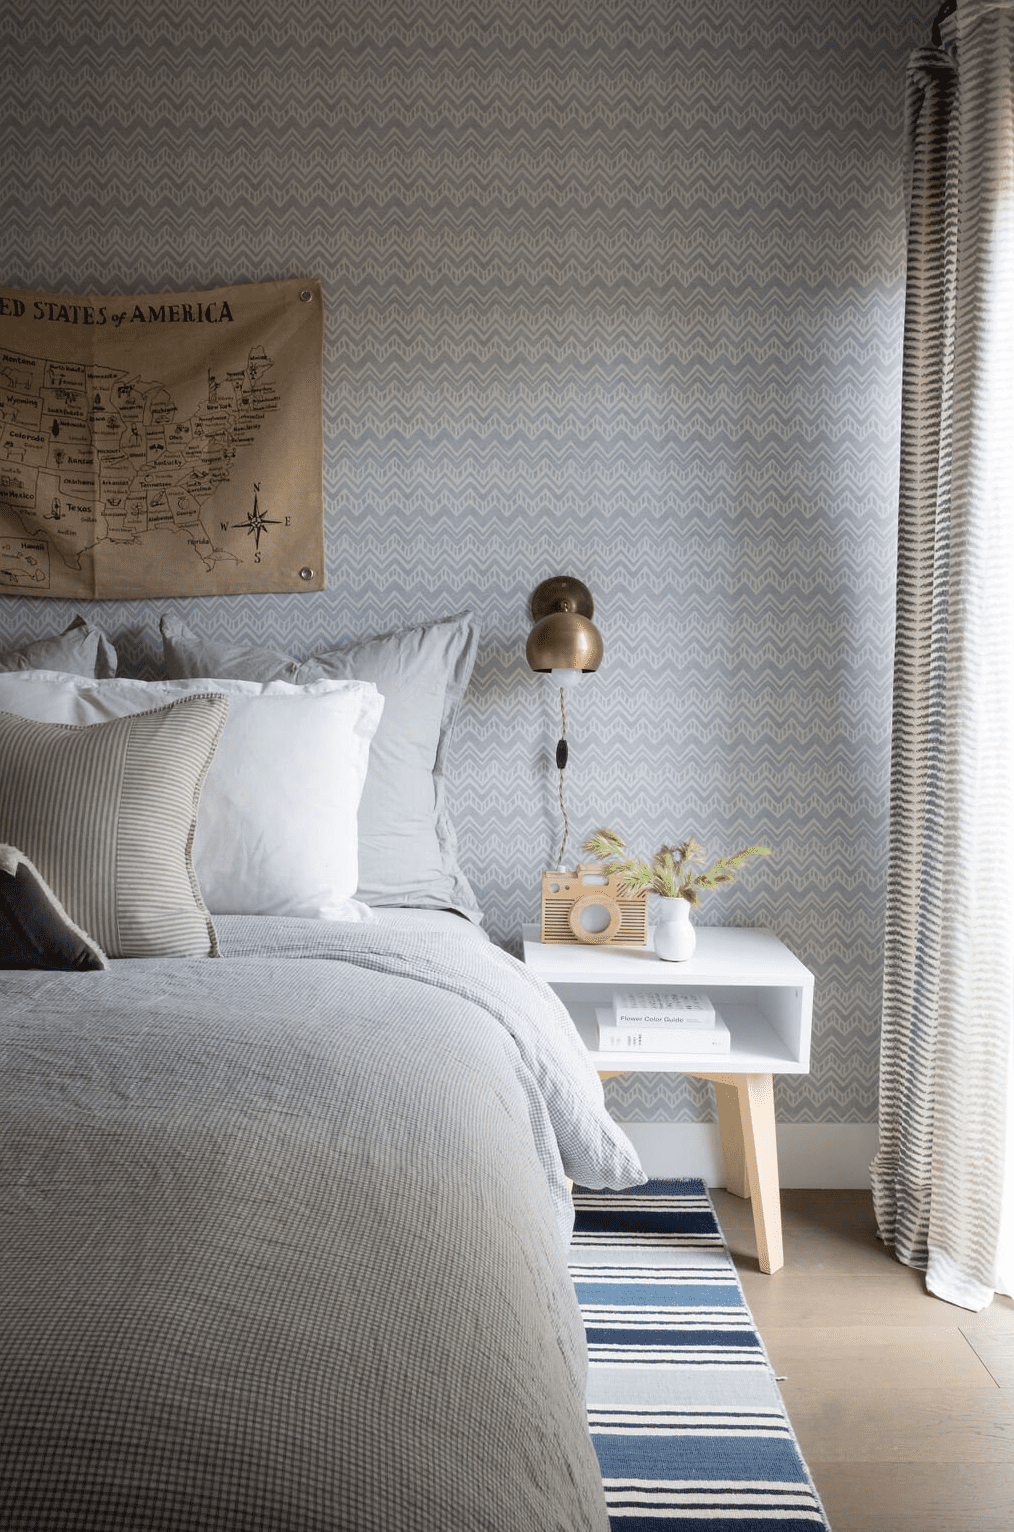 A bedroom with printed wallpaper and complementary printed curtains